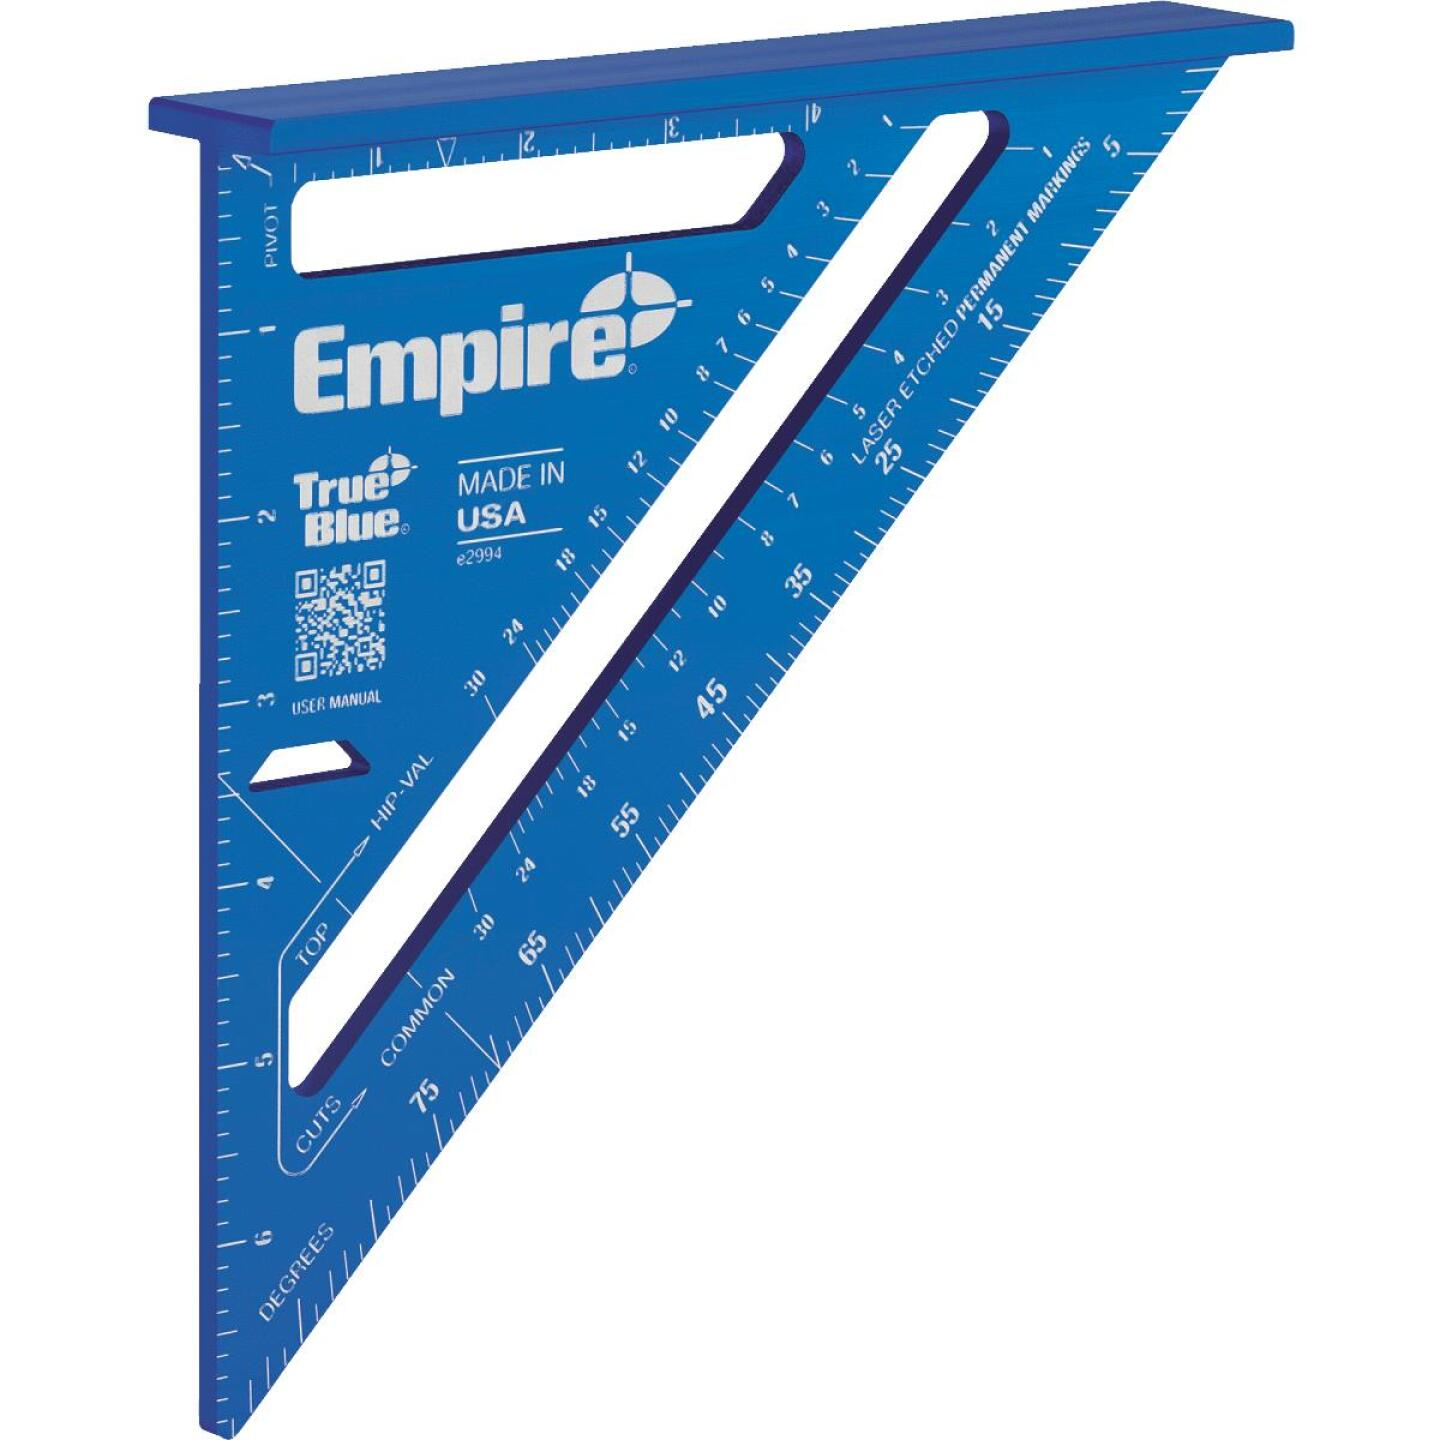 Empire True Blue 7 In. Aluminum Laser Etched Rafter Square Image 2